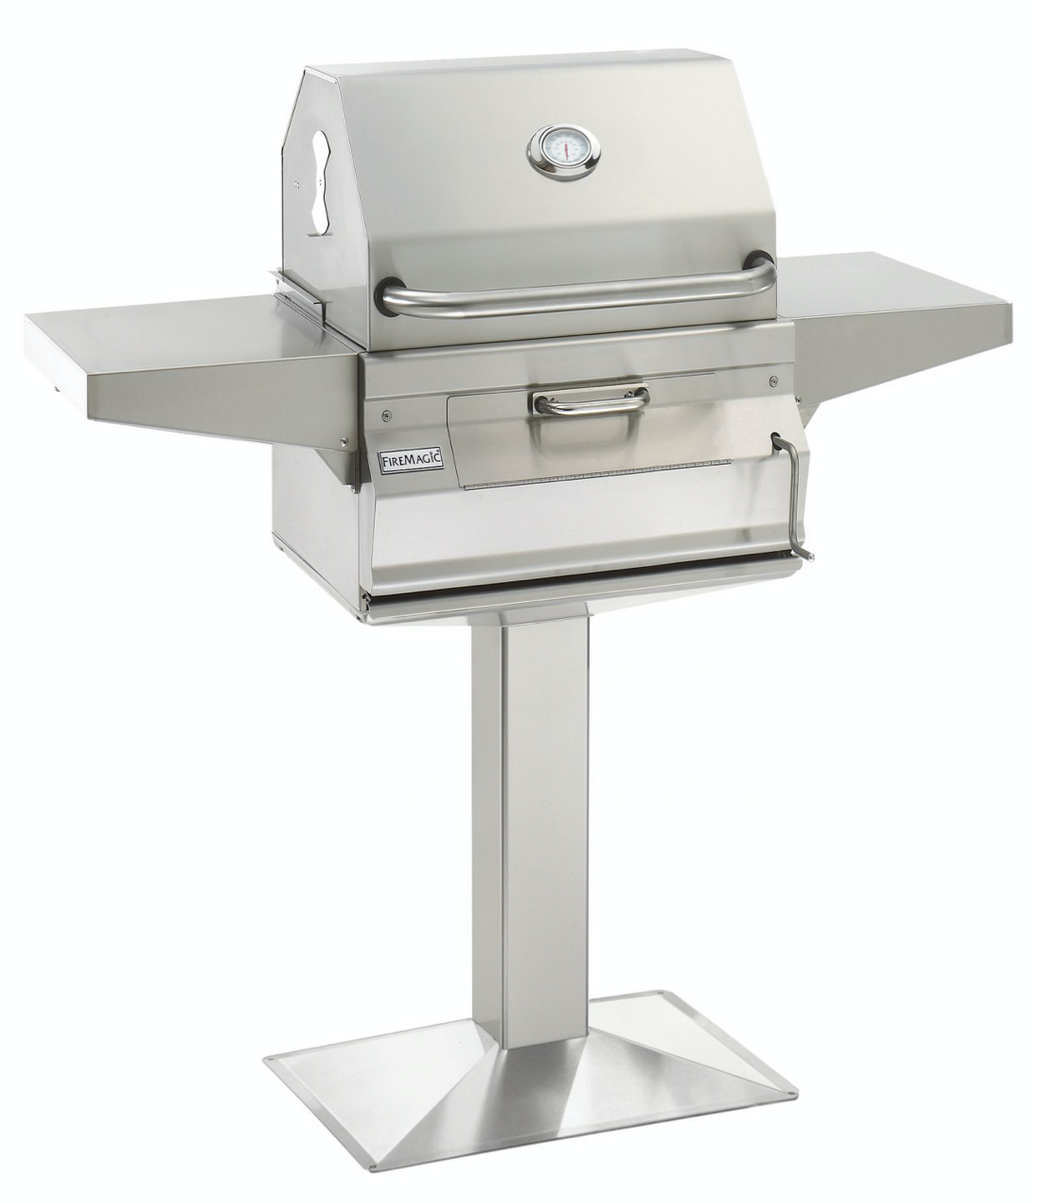 Fire Magic Charcoal Stainless Steel Patio or Post Mount Grill - Babe's BBQ Warehouse